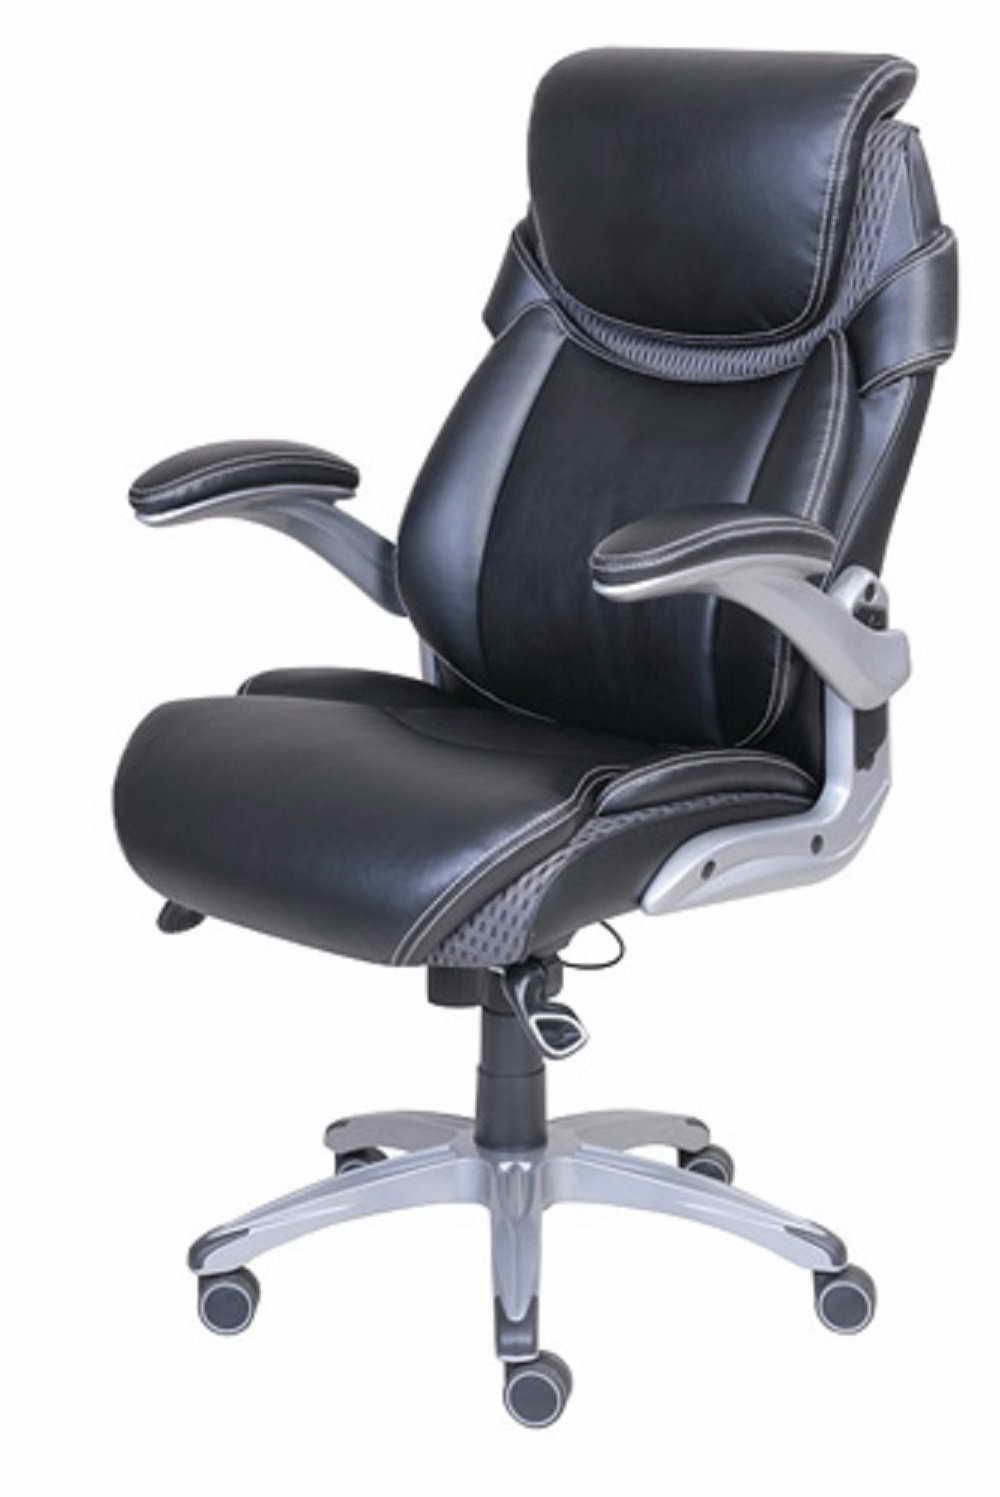 Groovy Dormeo True Innovations Octaspring Bonded Leather Manager Machost Co Dining Chair Design Ideas Machostcouk